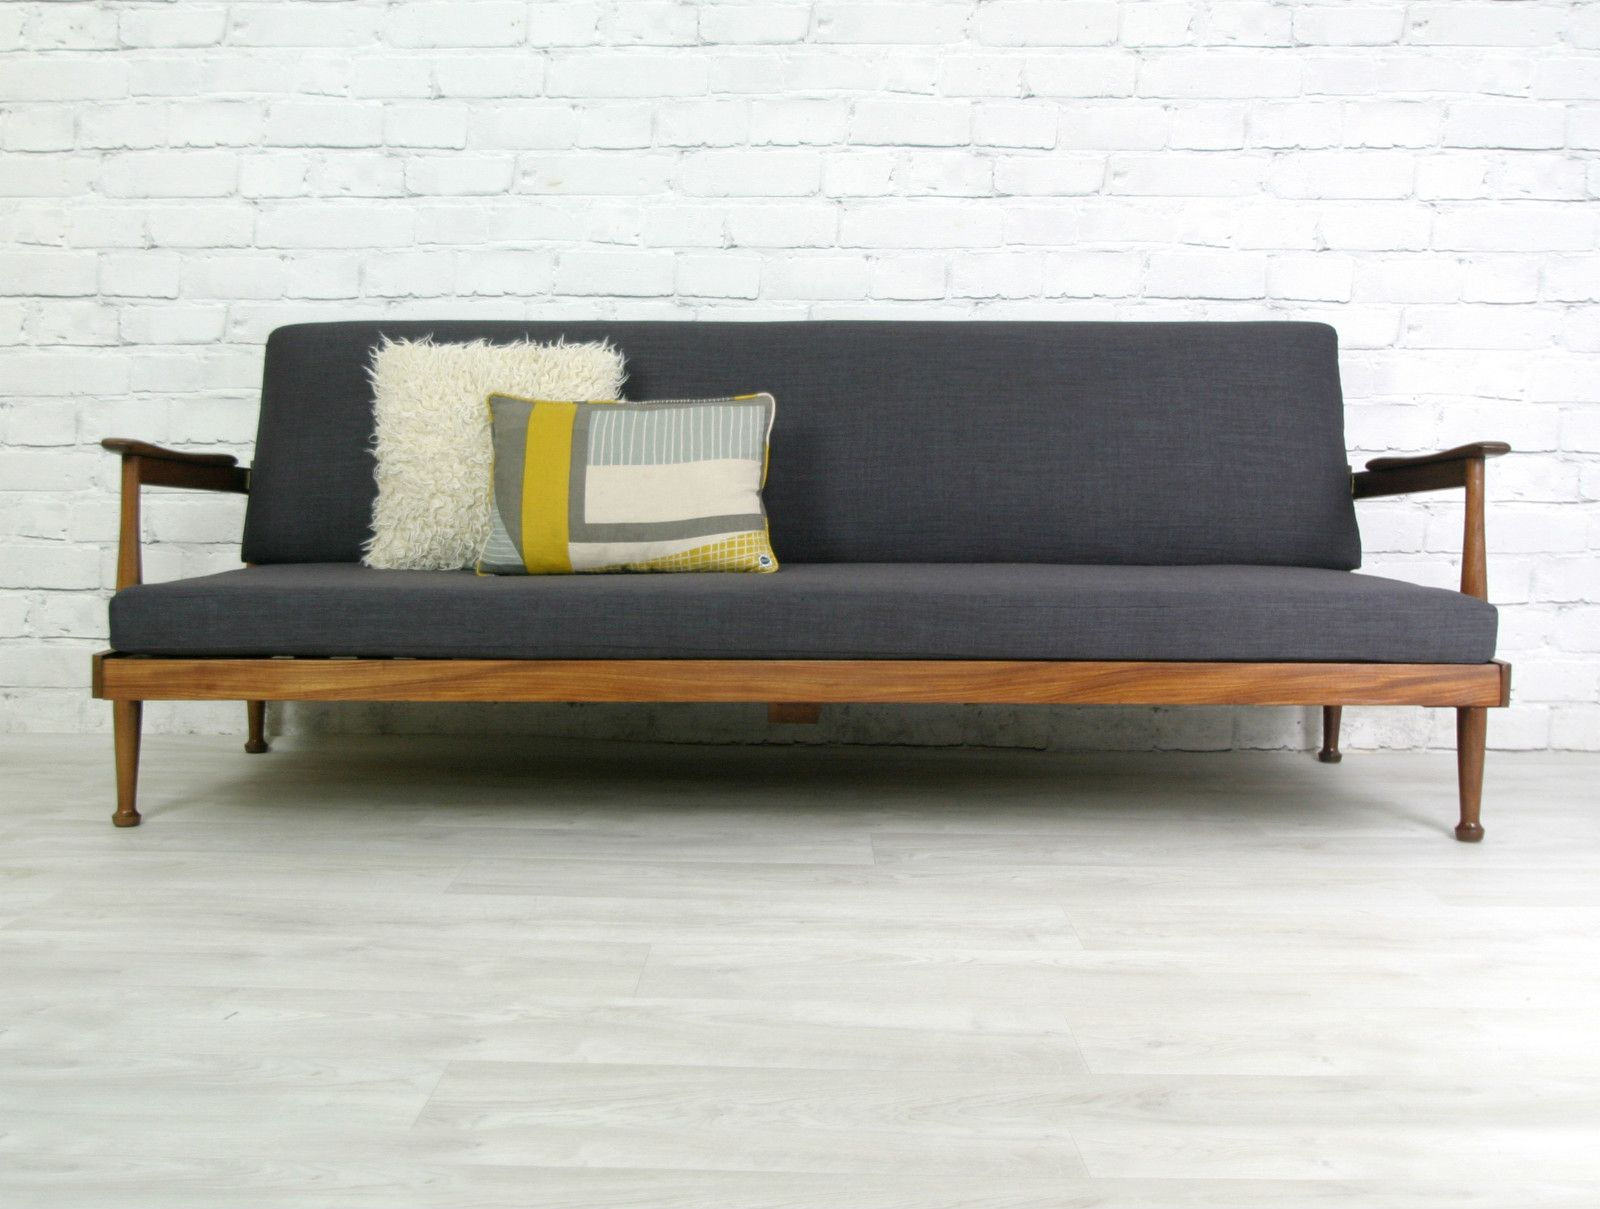 GUY ROGERS RETRO VINTAGE TEAK MID CENTURY DANISH STYLE SOFA BED